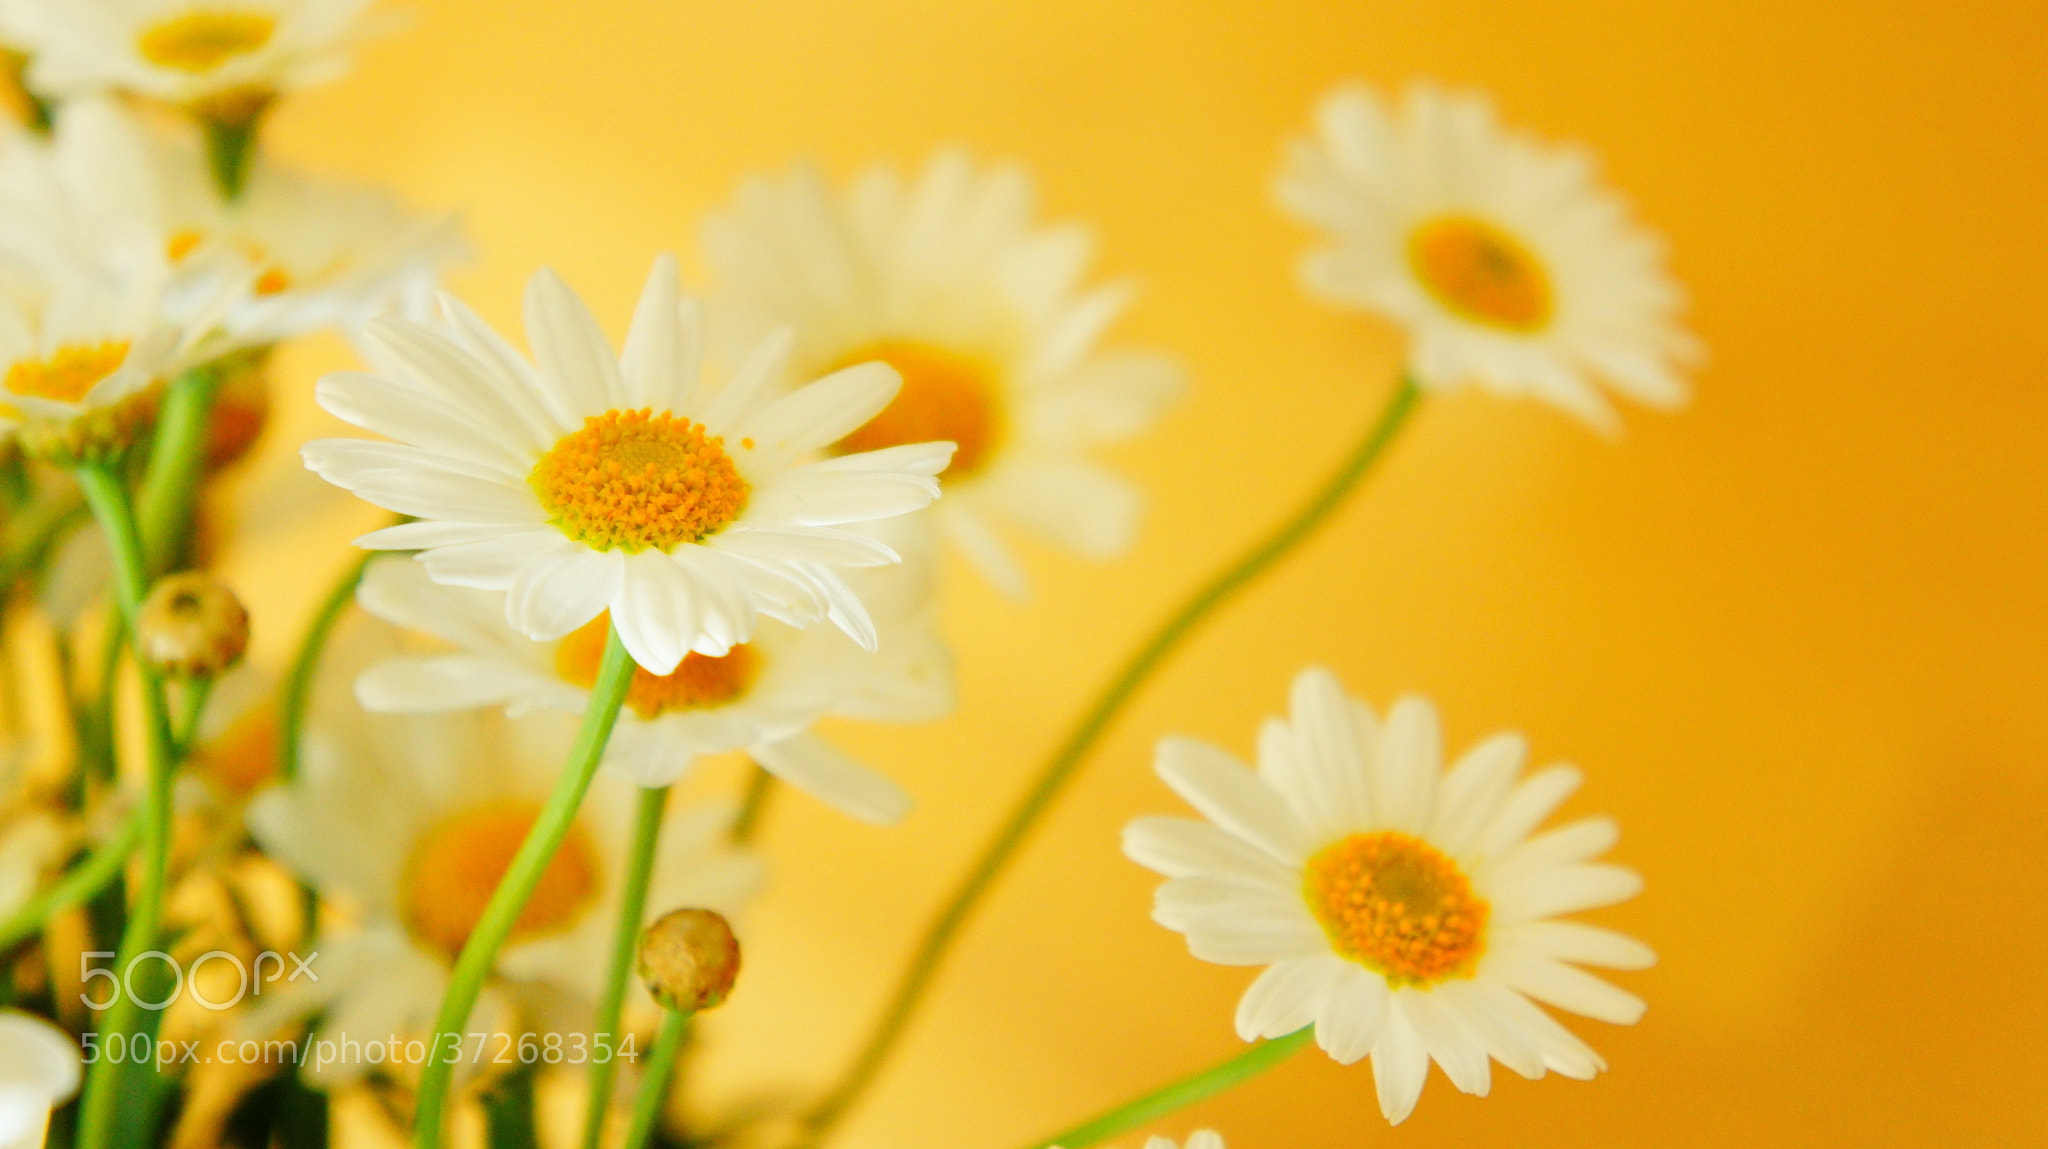 Photograph All i can feel by Hiwa  on 500px